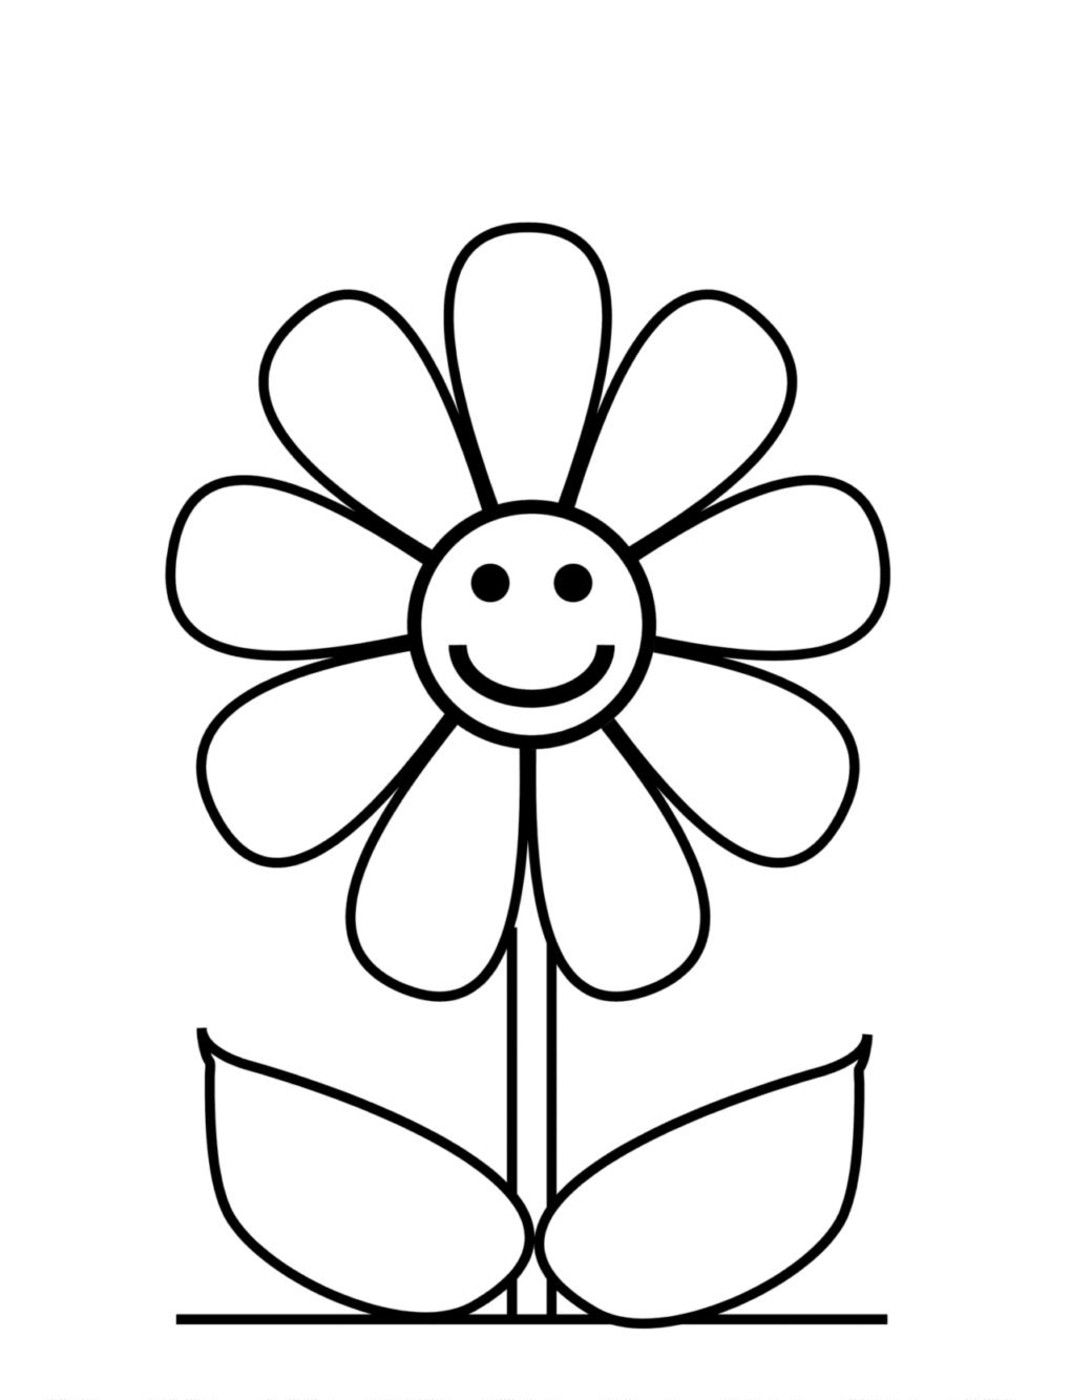 outline pictures of flowers for colouring free flower outline for kids download free clip art free pictures of colouring flowers outline for